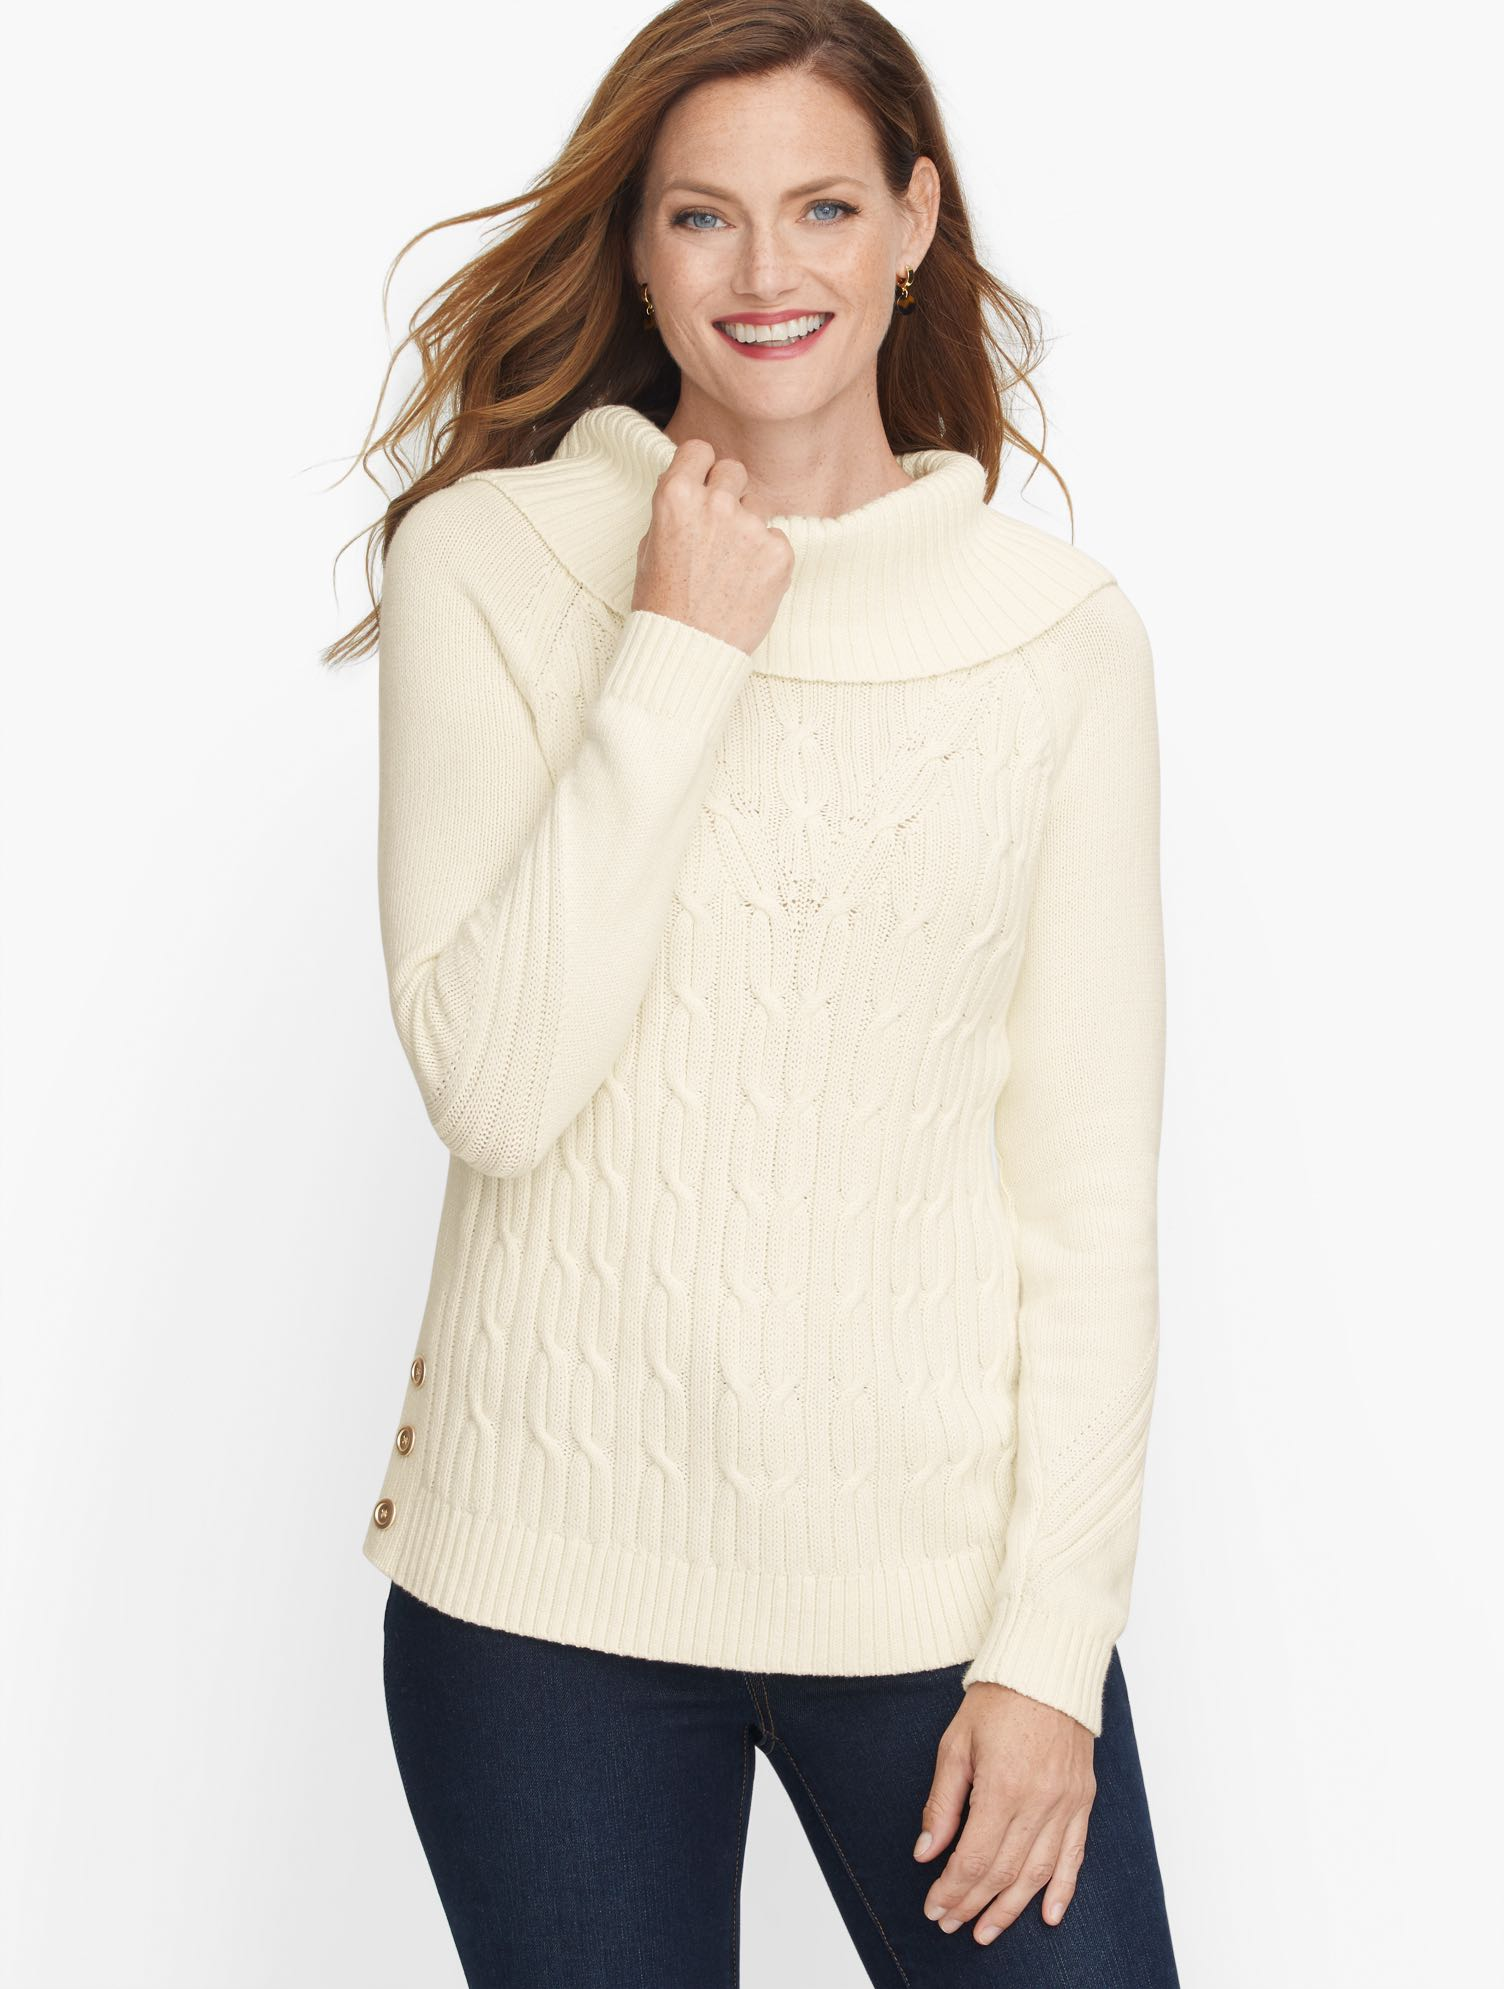 Sumptuous cowl neck turns up the coziness of our cable sweater. Button detail at side. Perfect for long walks or lounging at home. Features Neckline: CowlSleeve length: LongHits: At hipClosure: PulloverImported Fit: Misses: 25 1/2 inches; Petite: 24 1/2 inches Material: 100% Cotton Care: Machine Wash; Reshape, lay flat to dry Cotton Cowlneck Sweater - Solid - Ivory - XL Talbots